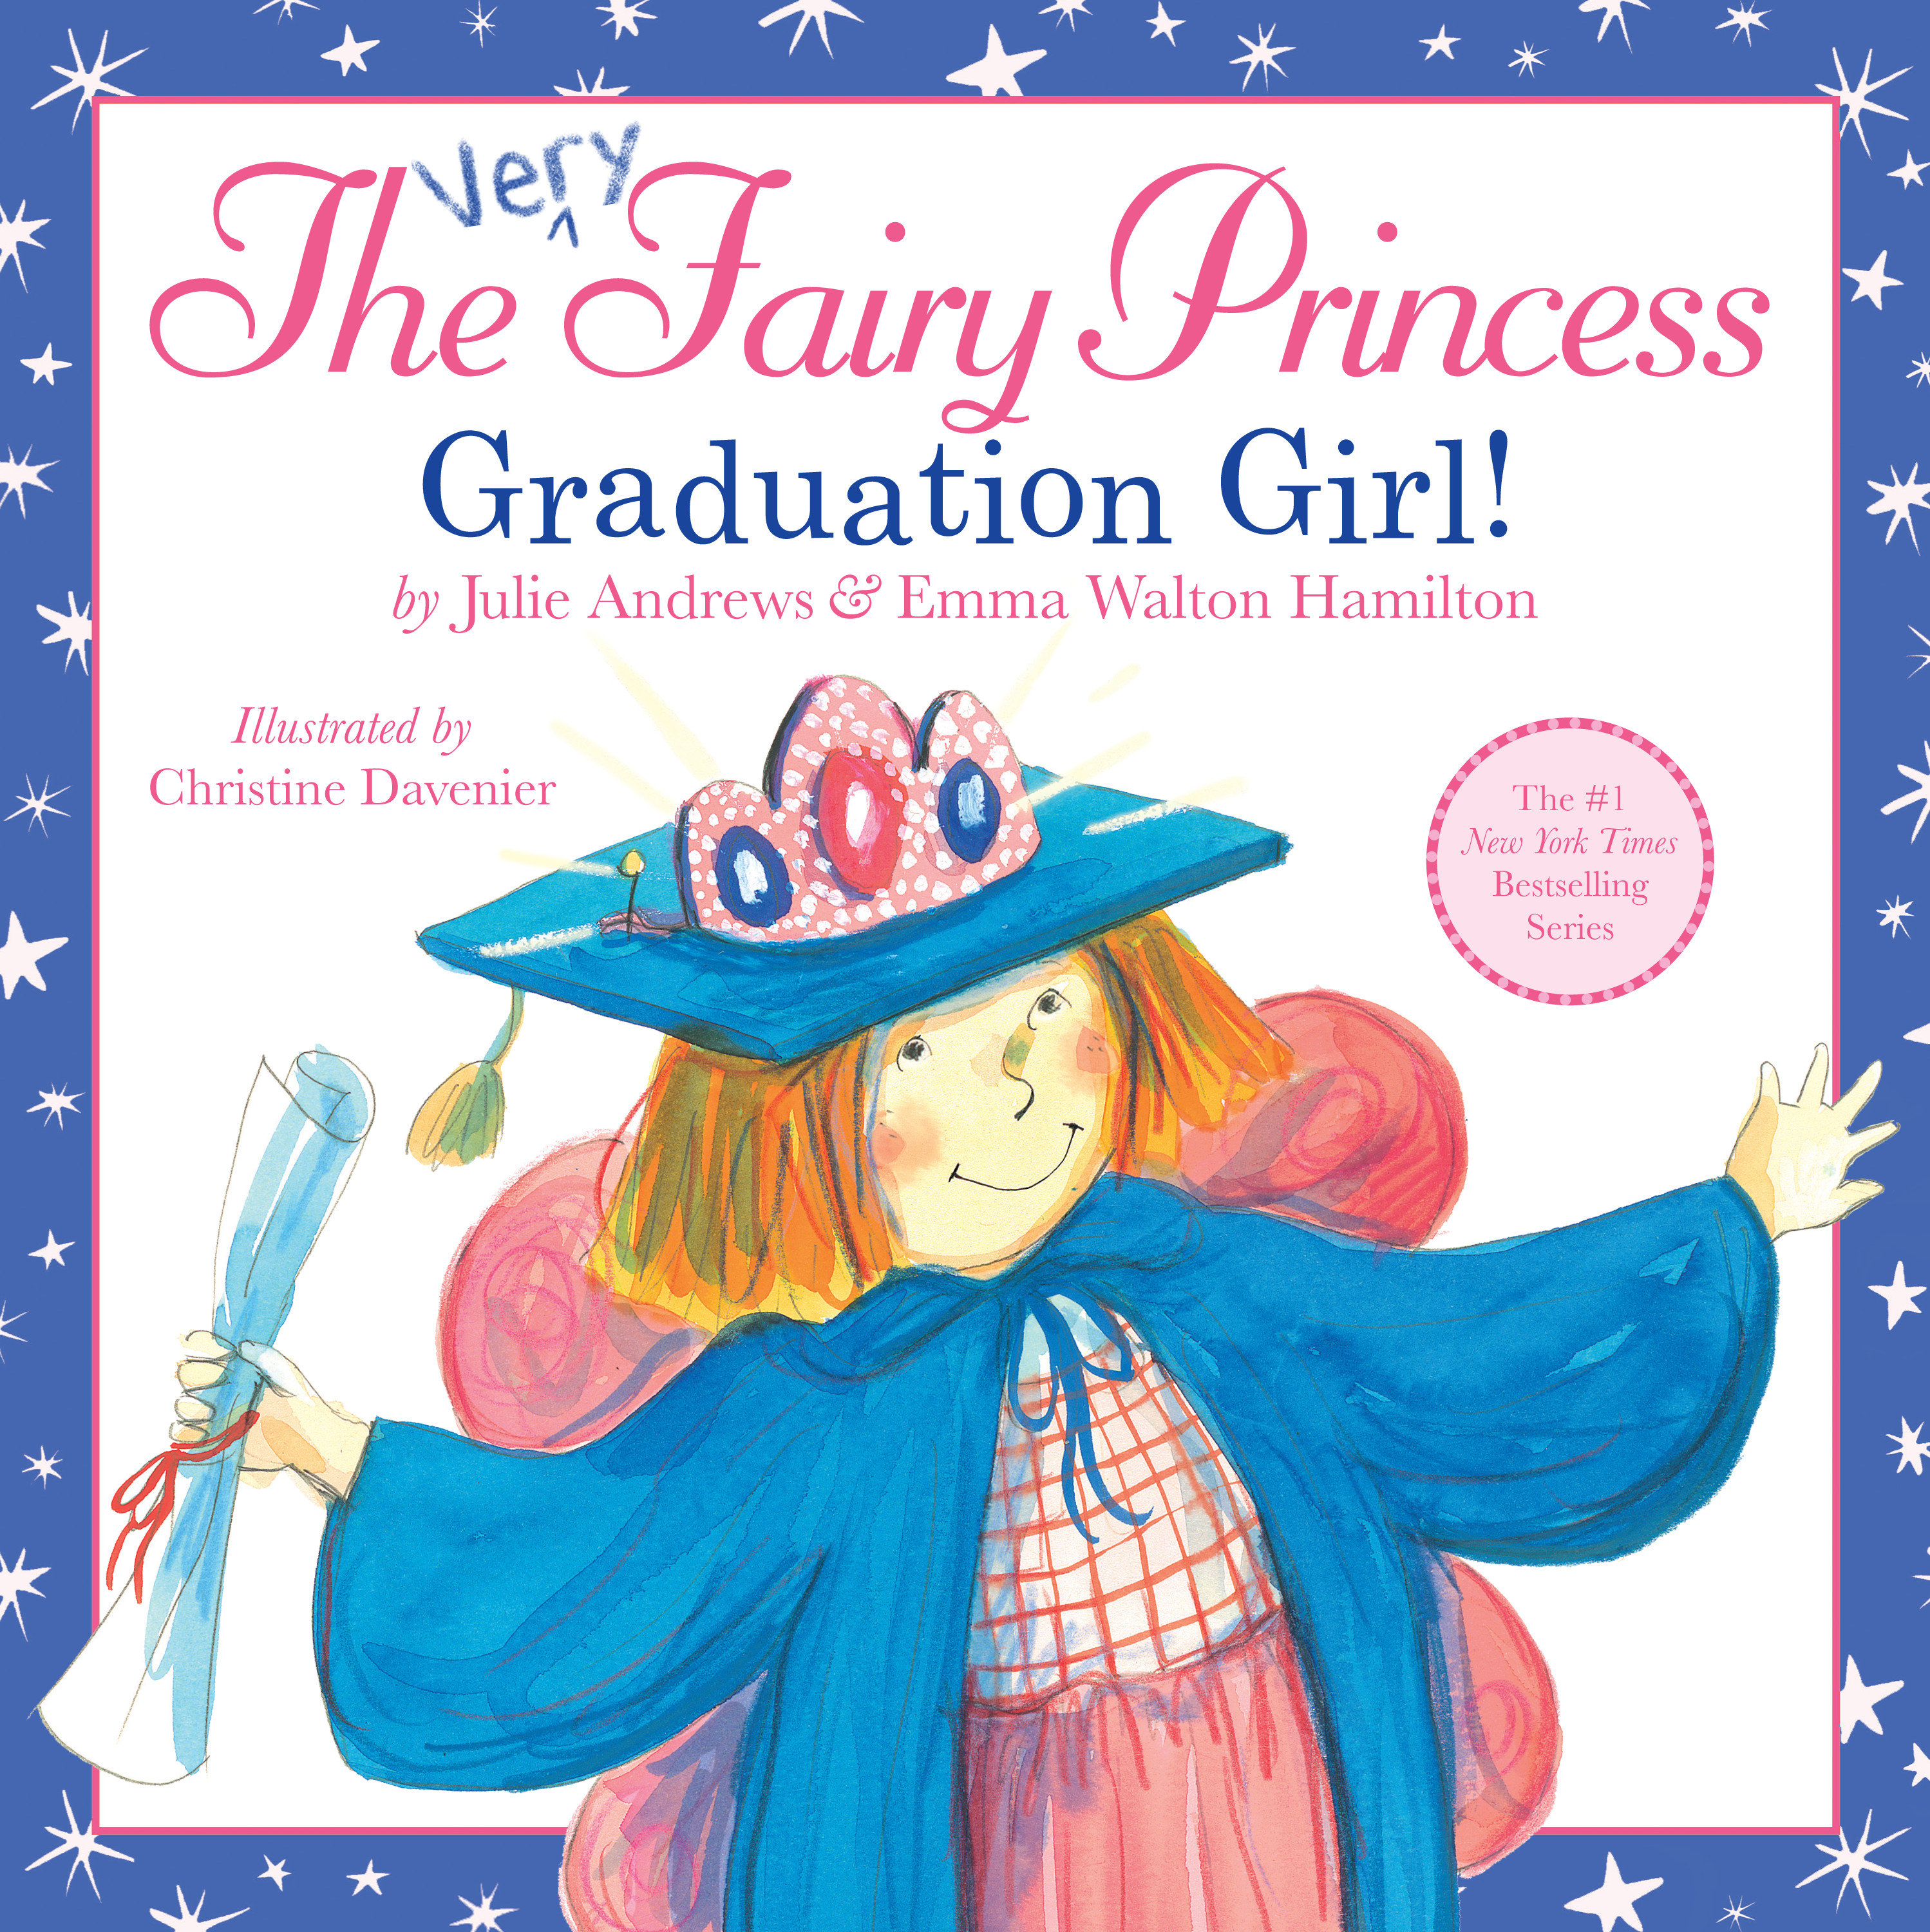 The Very Fairy Princess: Graduation Girl – Book Review and Giveaway